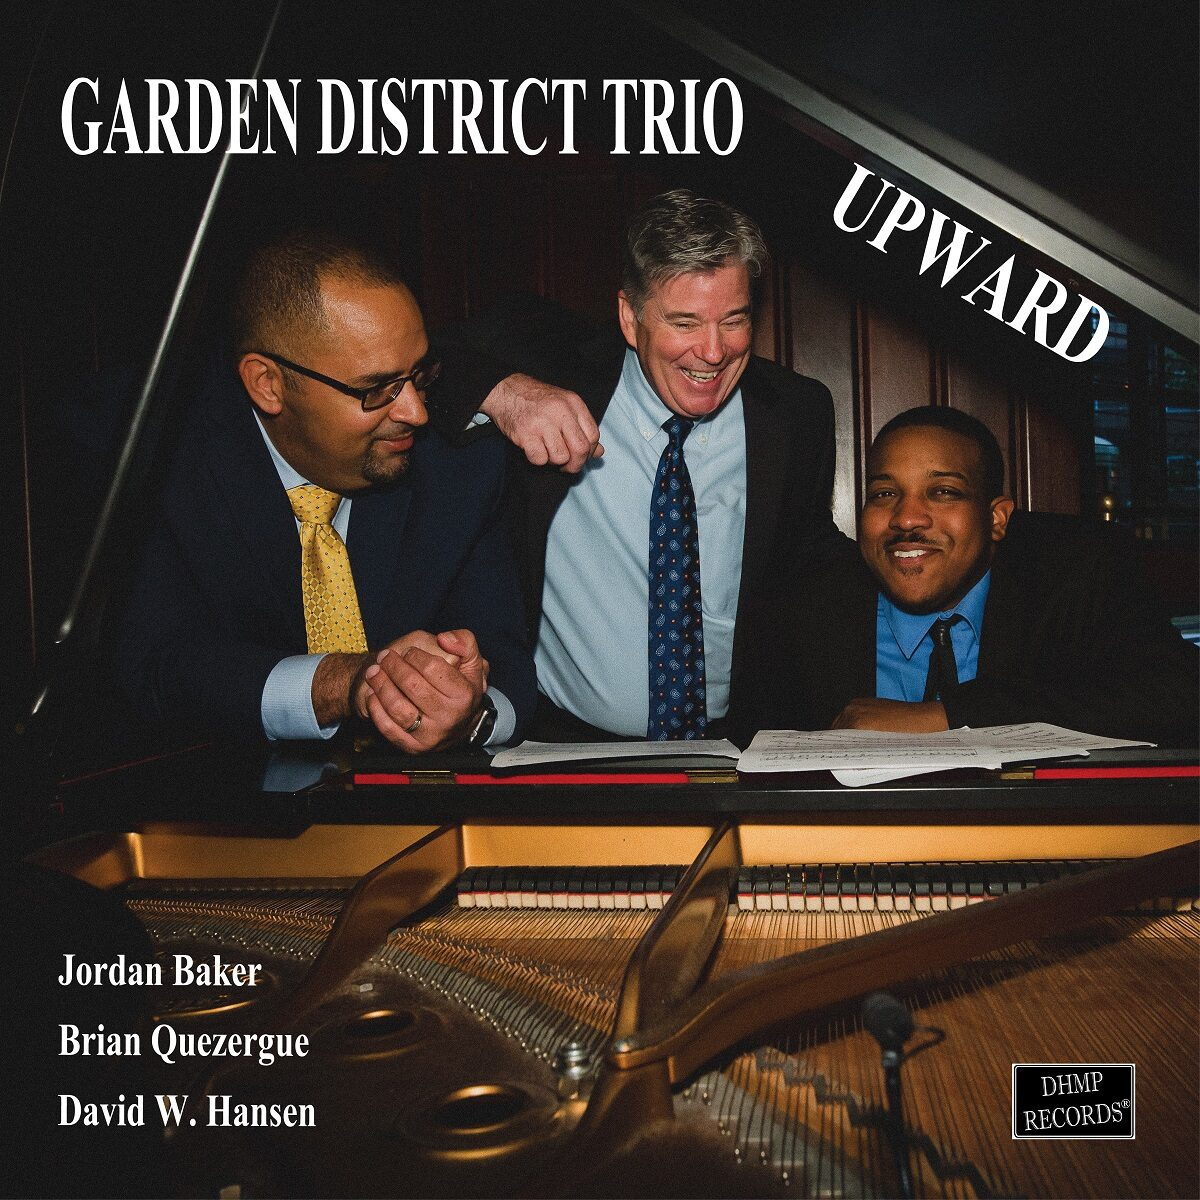 UPWARD Garden District Trio 1200x1200